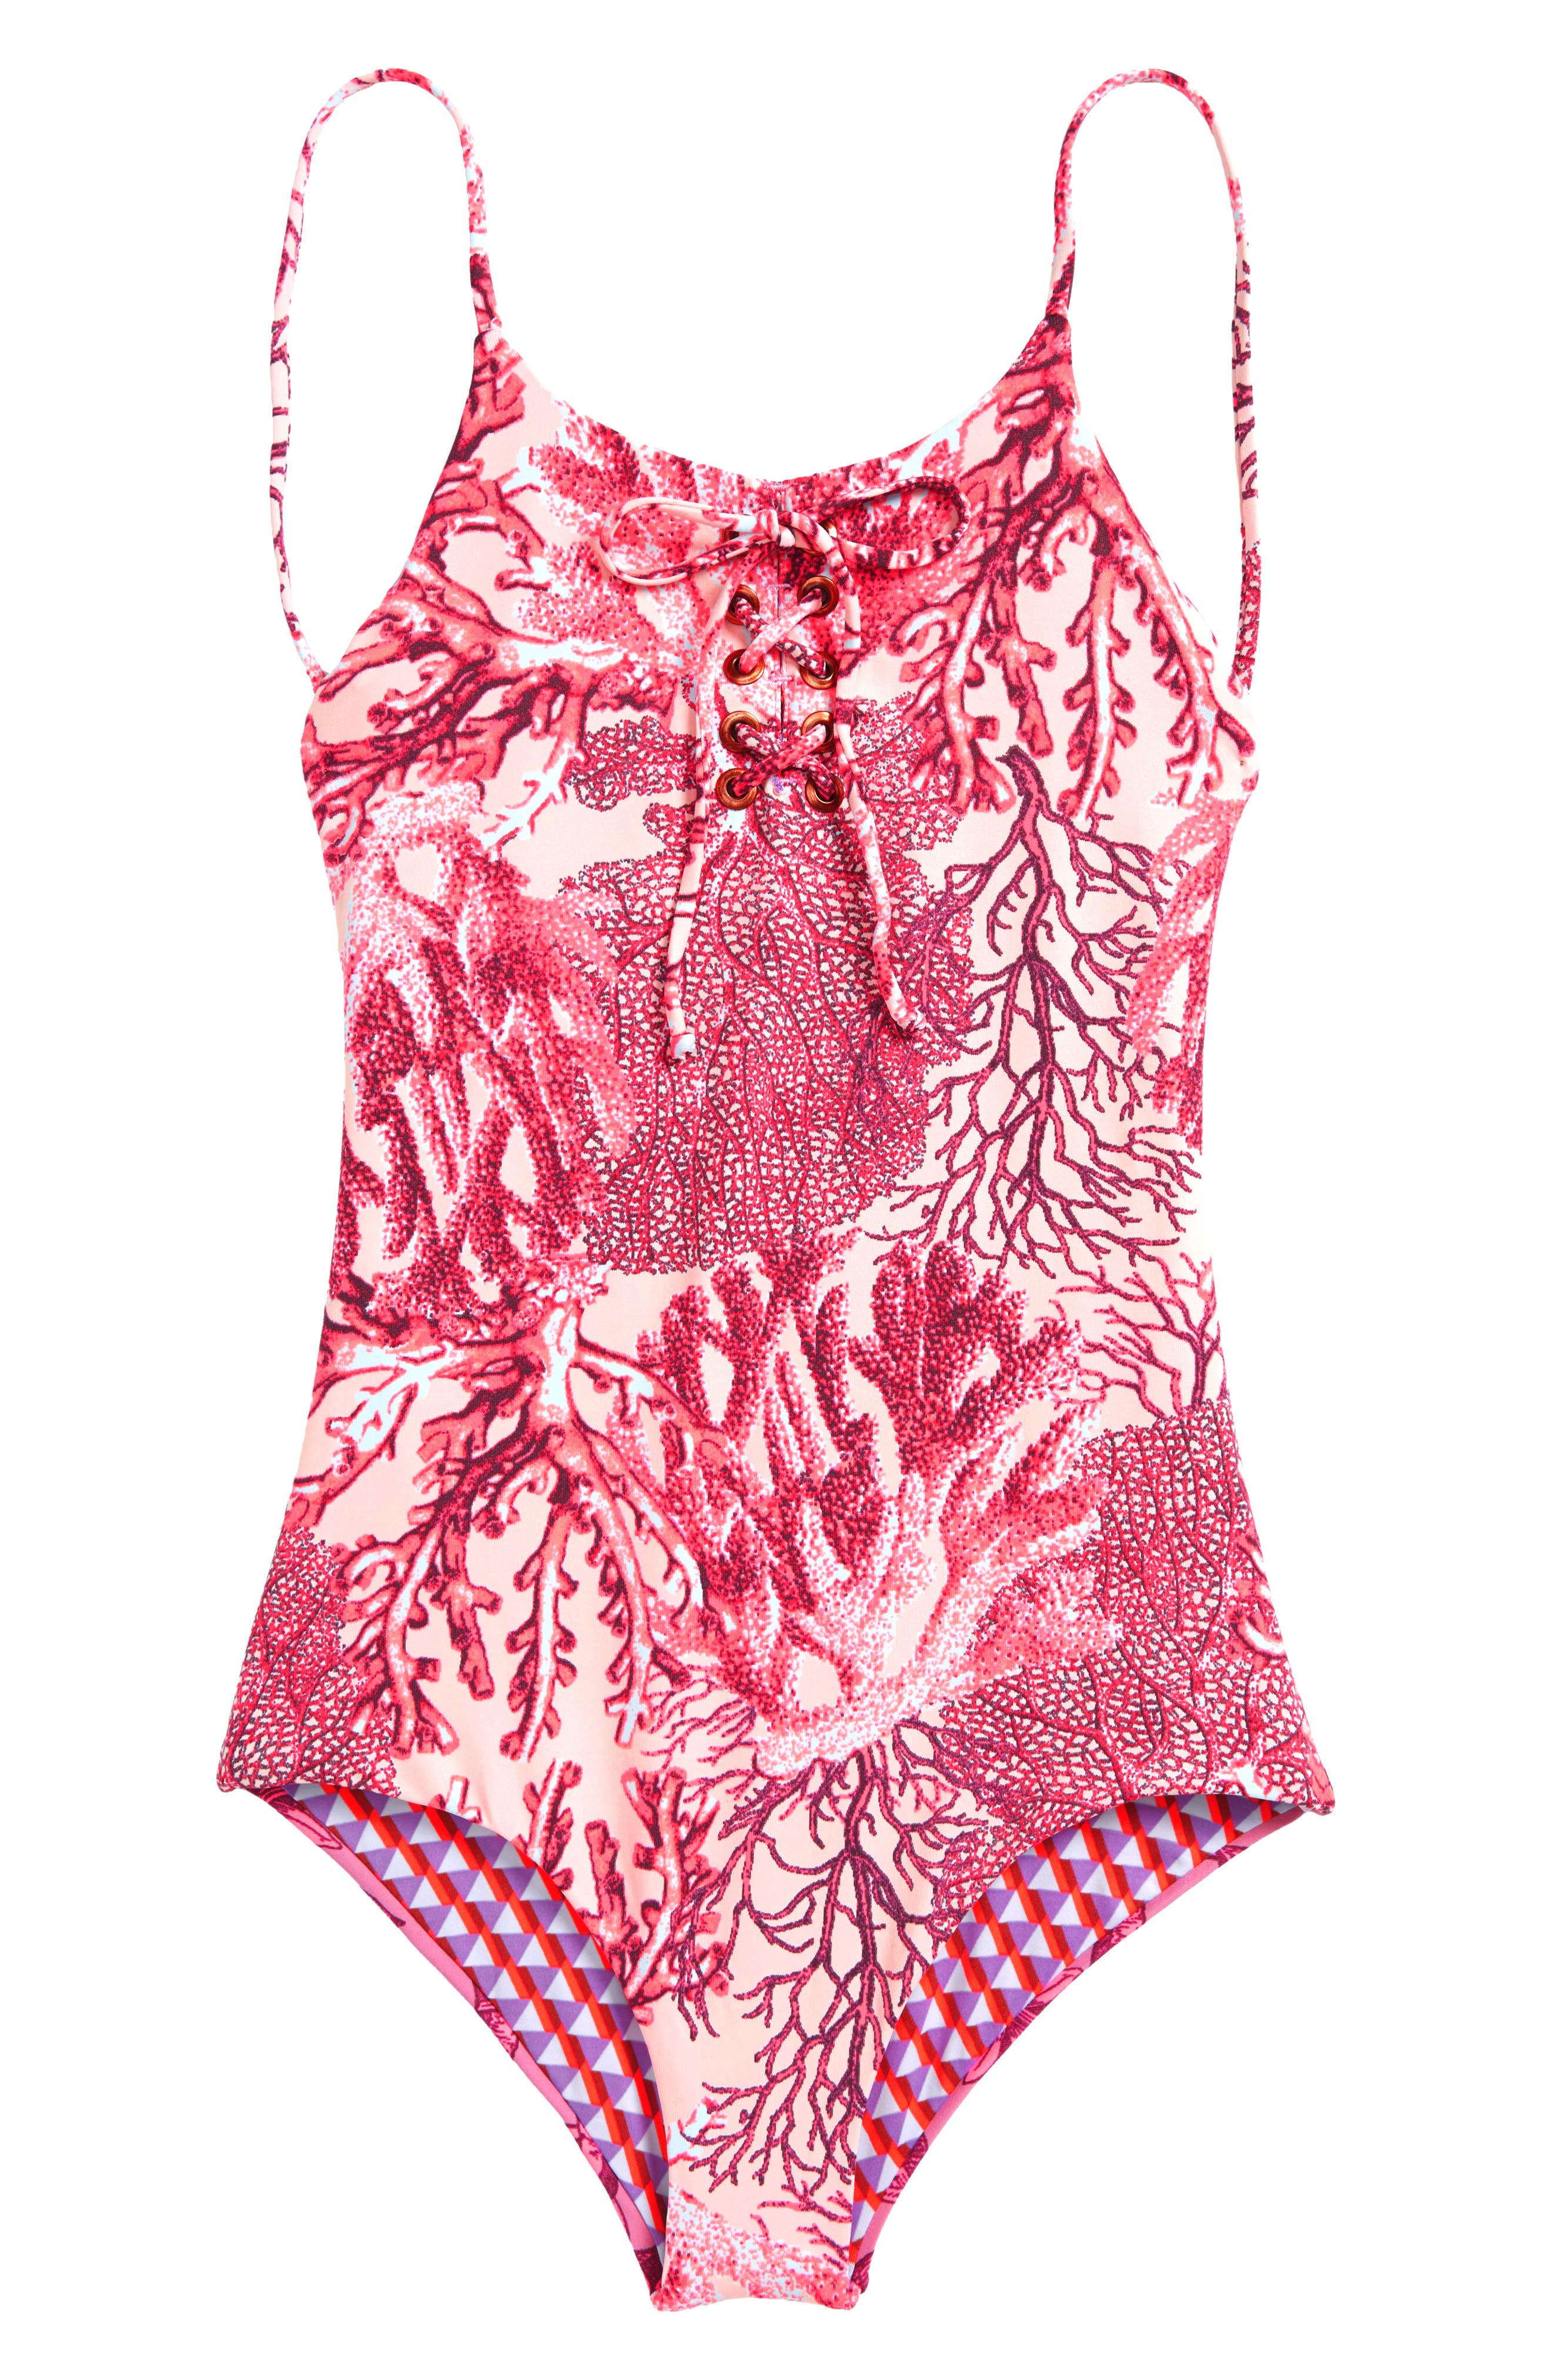 Forever Summer Lace-Up One-Piece Reversible Swimsuit,                             Main thumbnail 1, color,                             650